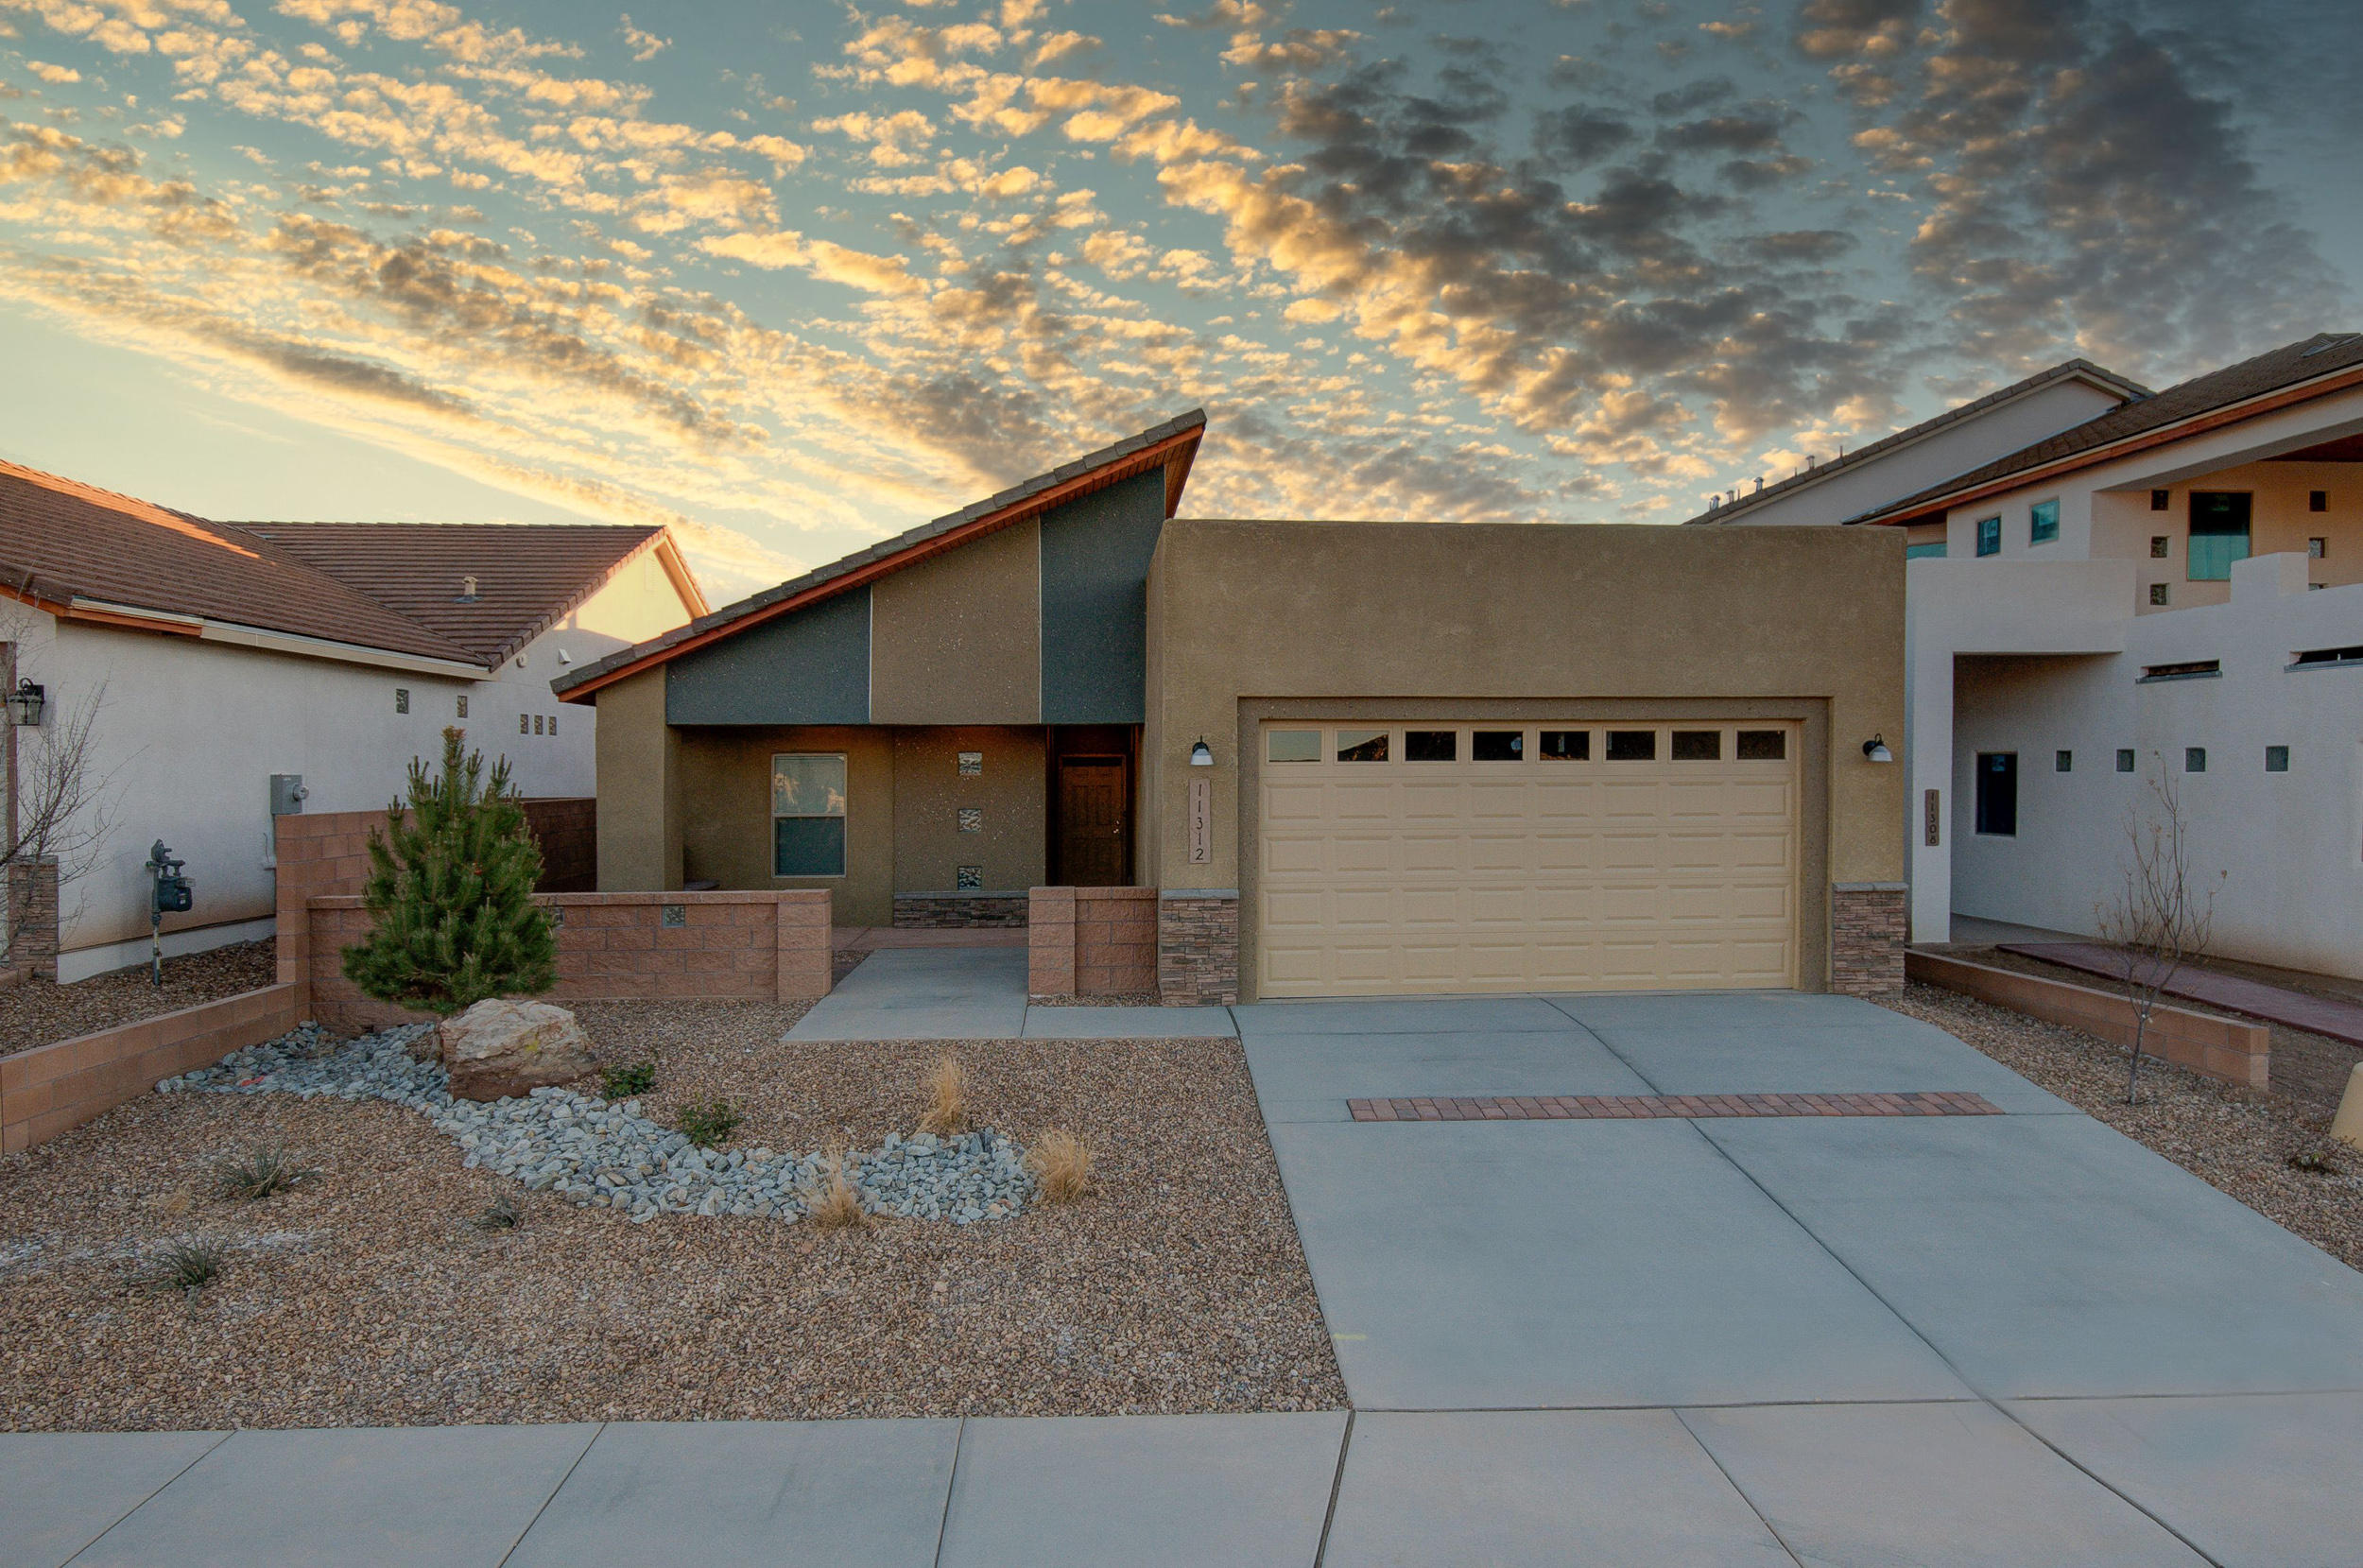 Nice Courtyard Entry into this Beautiful New Constuction Home Complete with Easy Maintenance Front and Backyard Landscaping as well as Window Coverings Thru-Out.  Enjoy Cozy Evenings by the Pretty Staked Stone Gas Log Fireplace In the Family Room, which Opens to a Very Pretty Kitchen with Breakfast Bar, Quartz Countertops, Stainless Steel Appliances-Gas Range, Microwave and Fridge, Pantry, Tile Flooringand a Good Sized Dining Area. Check Out the Large Mastersuite with Walk-In Closet, Bath with Double Vanity, Large Shower and Pretty Tile Flooring. Really Nice Covered Front and Back Patio's To Enjoy the Warmer Weather.  It's Built Green to Emerald Level for Huge Utility Savings. Refrigerated Air, Low-E Windows, High Efficency Furnace & So Much More. Check it Out Today.